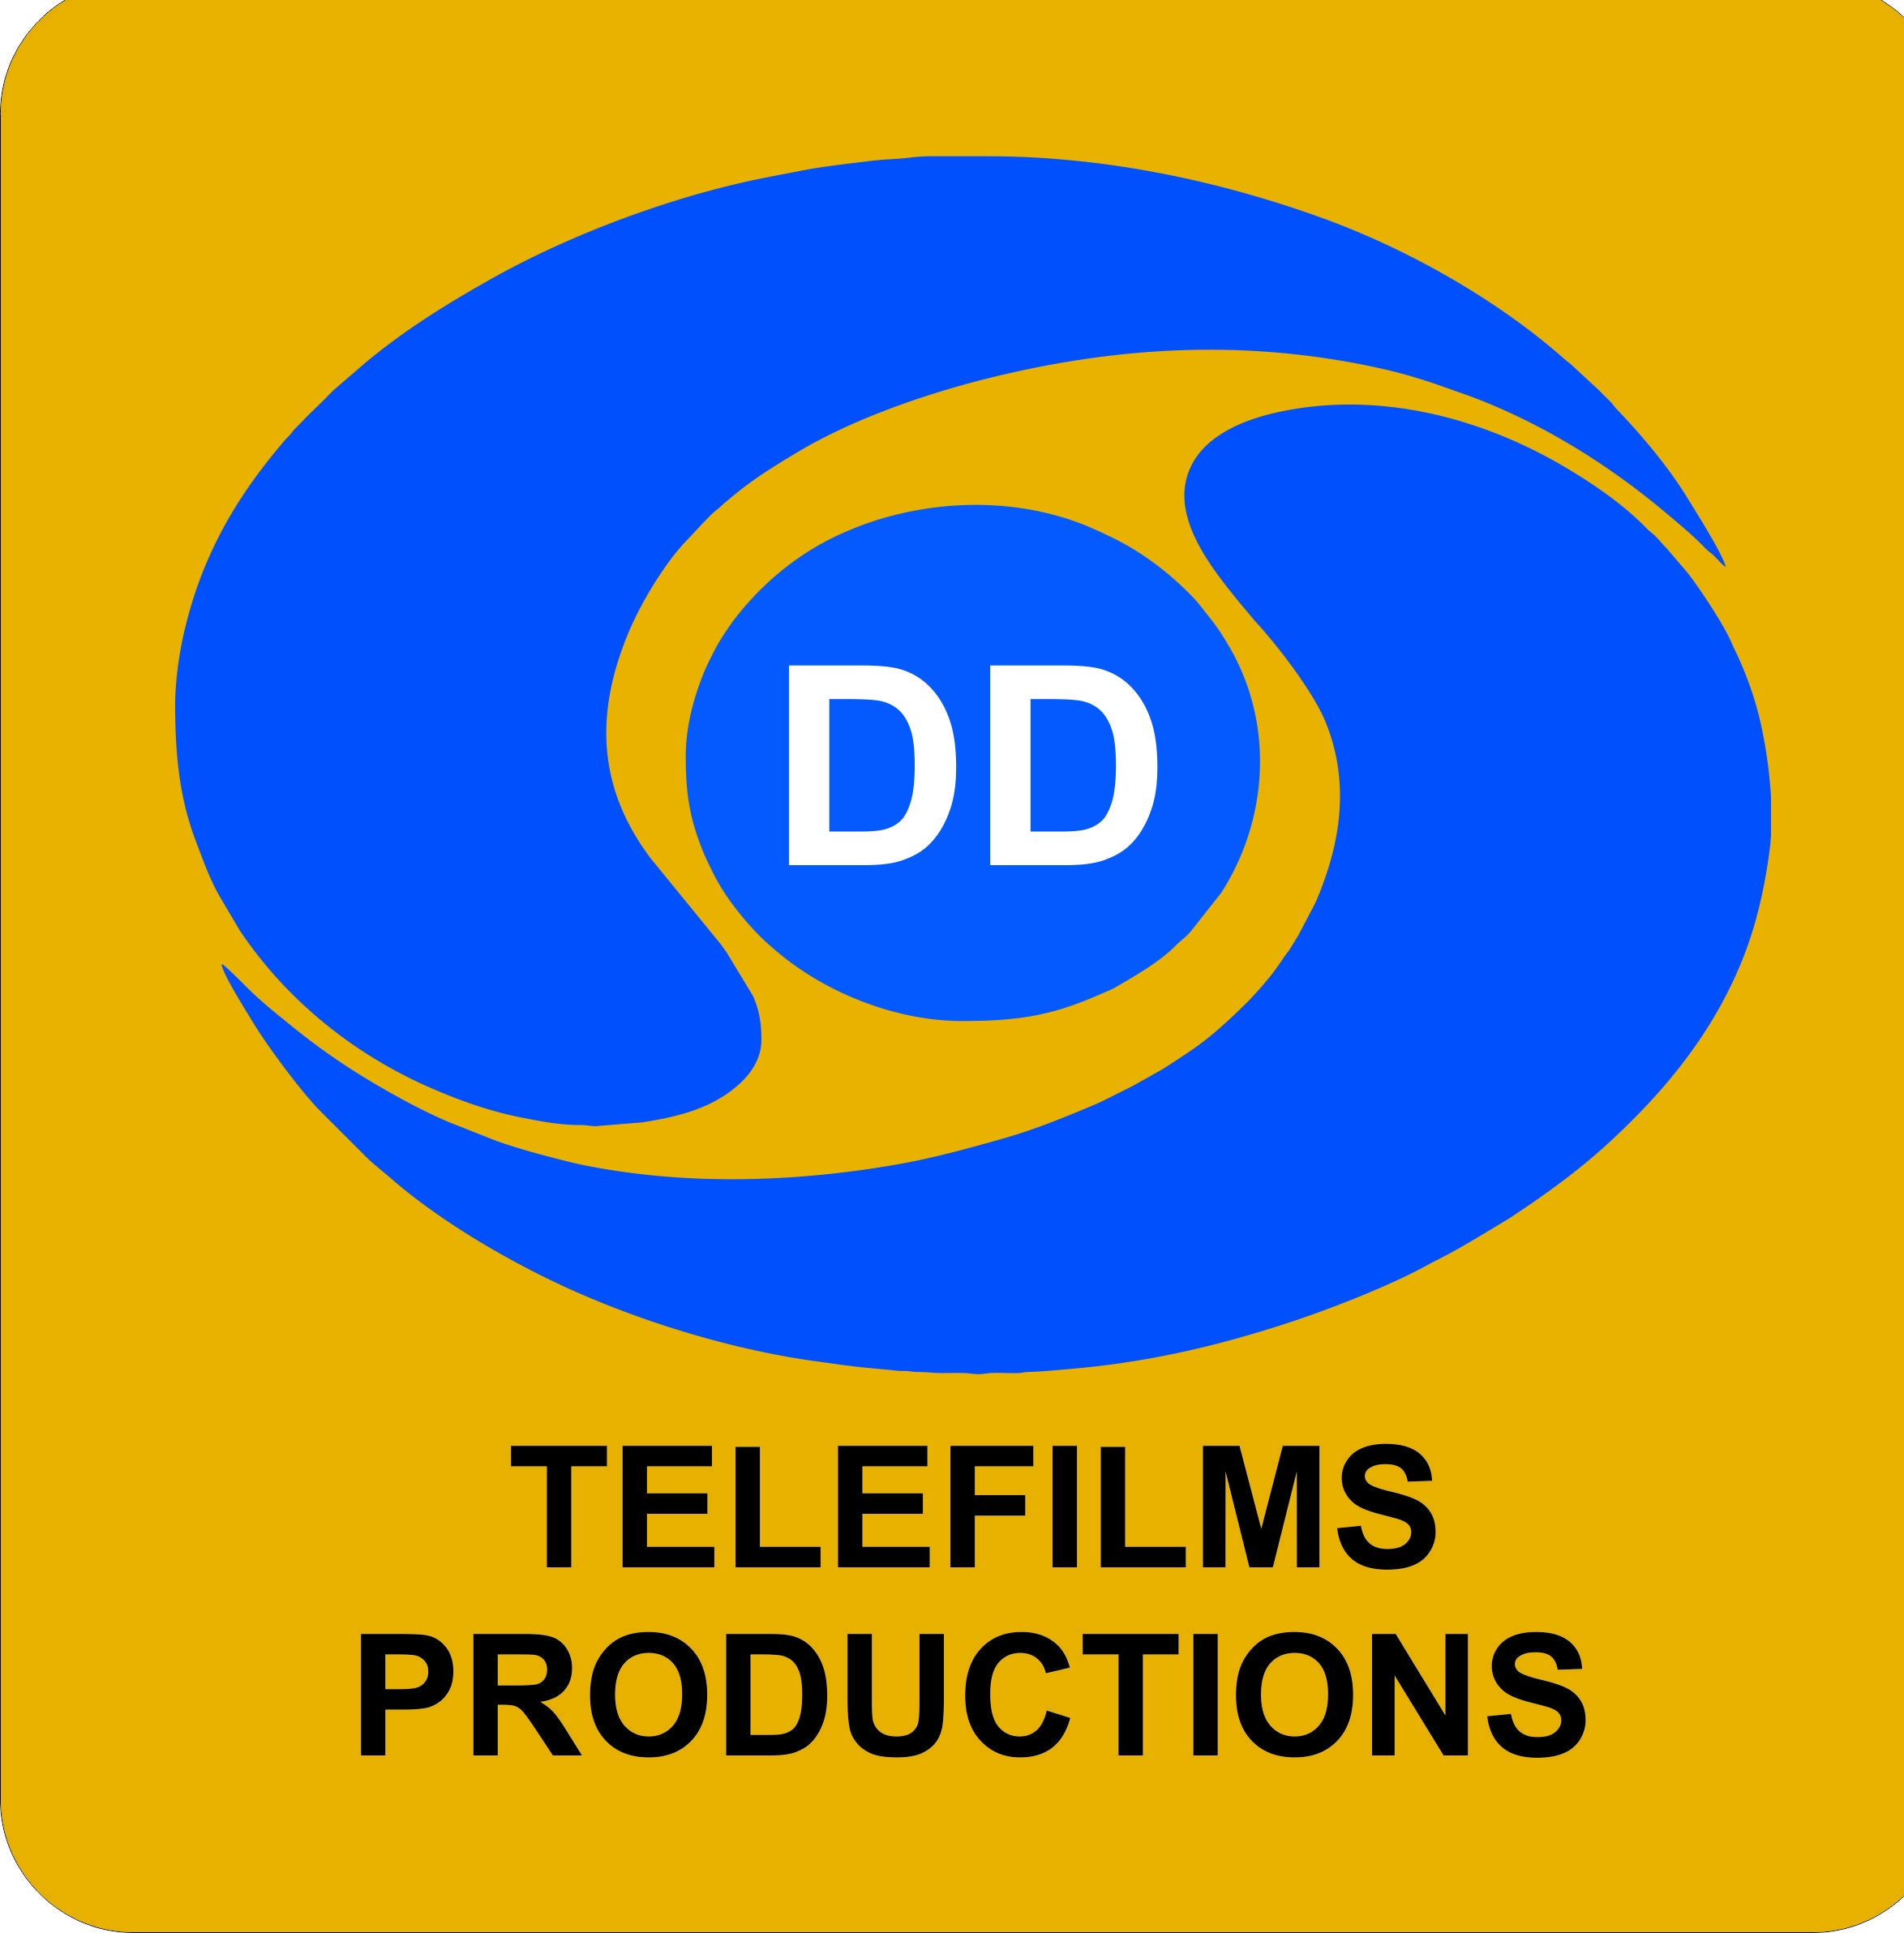 Dd telefilms production house